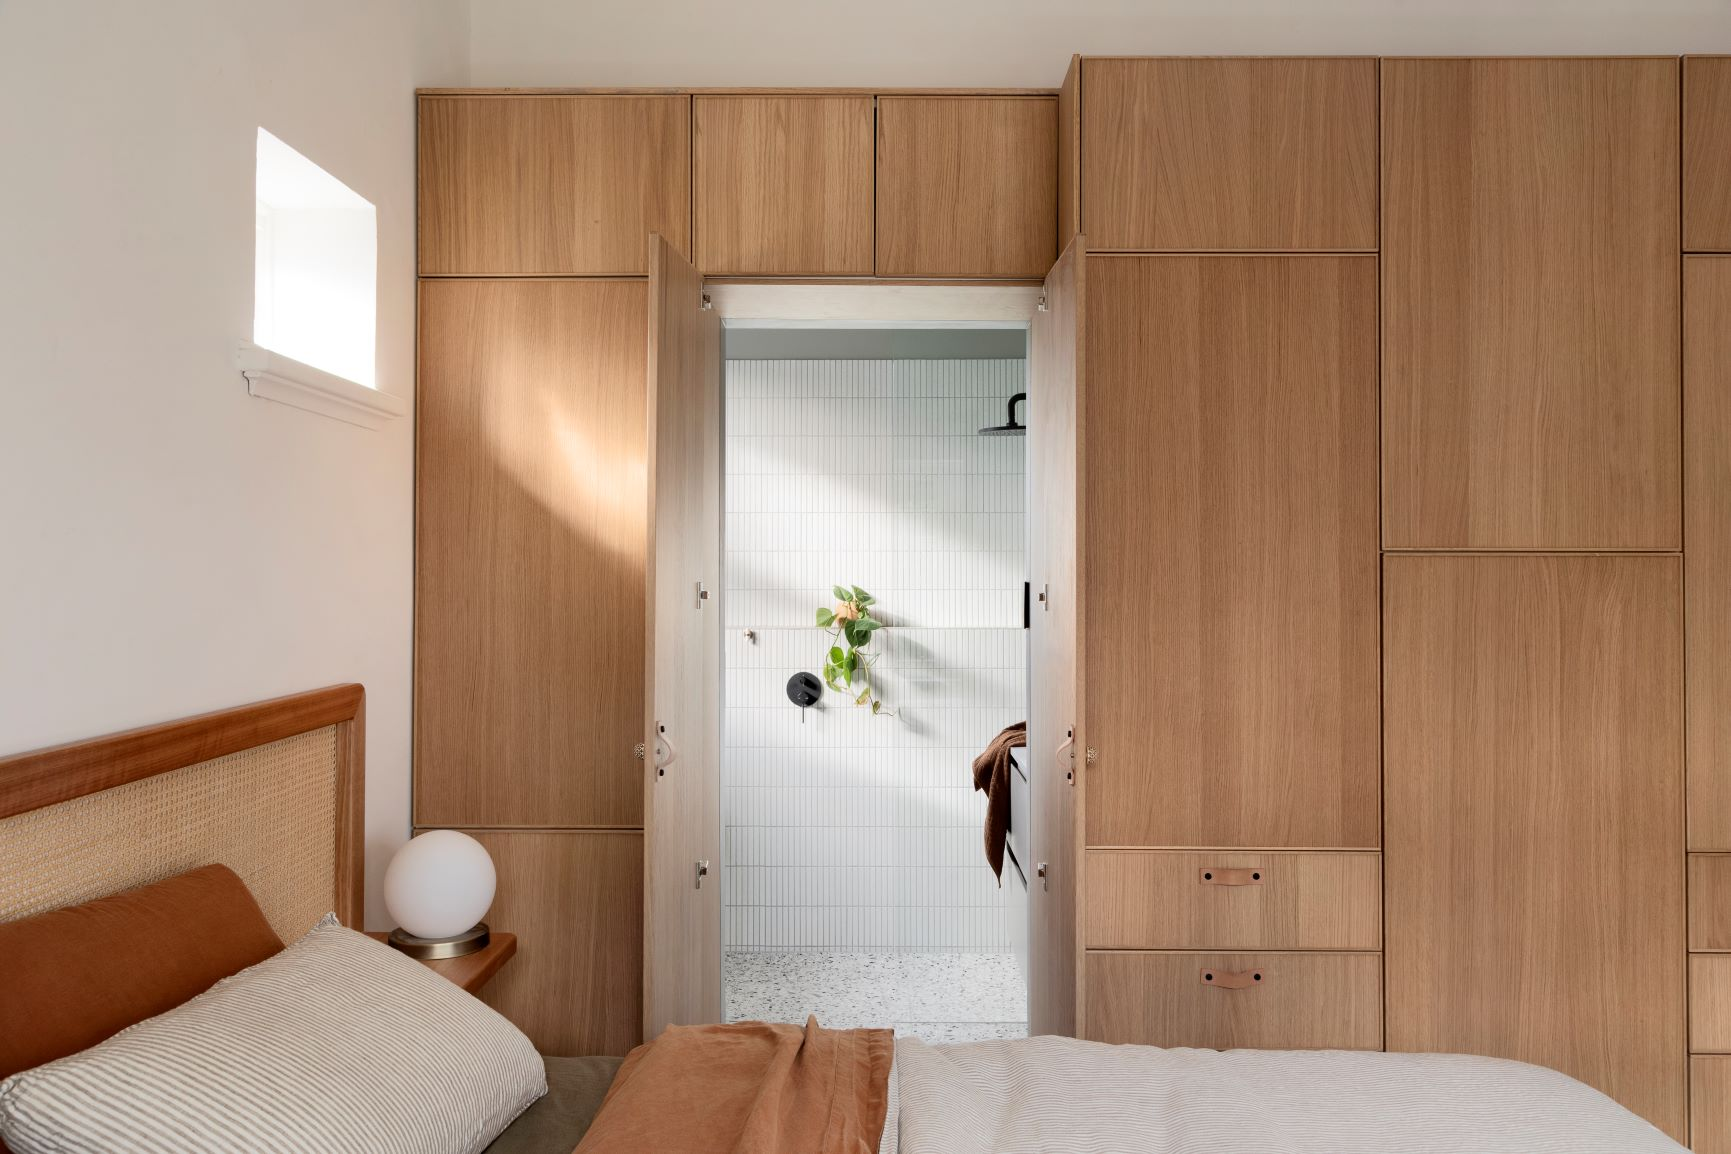 Alison Lewis Interiors Cecil Street Project Bedroom Ensuite with Wardrobe